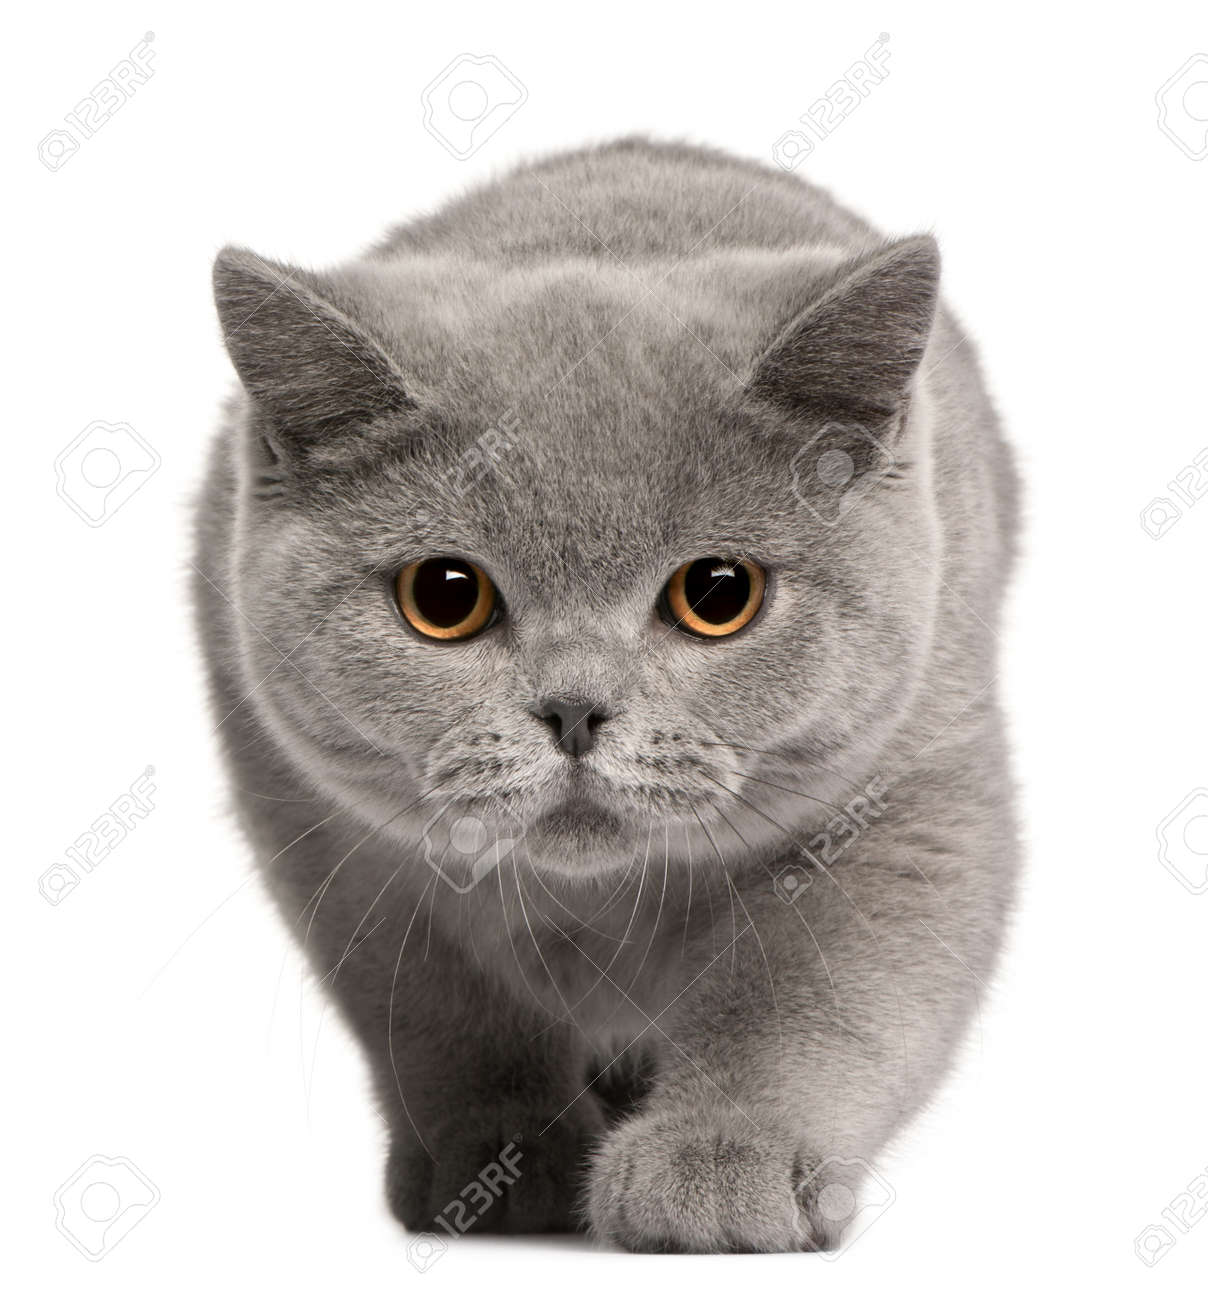 British Shorthair Kitten 4 Months Old In Front Of White Background Stock Photo Picture And Royalty Free Image Image 8972042